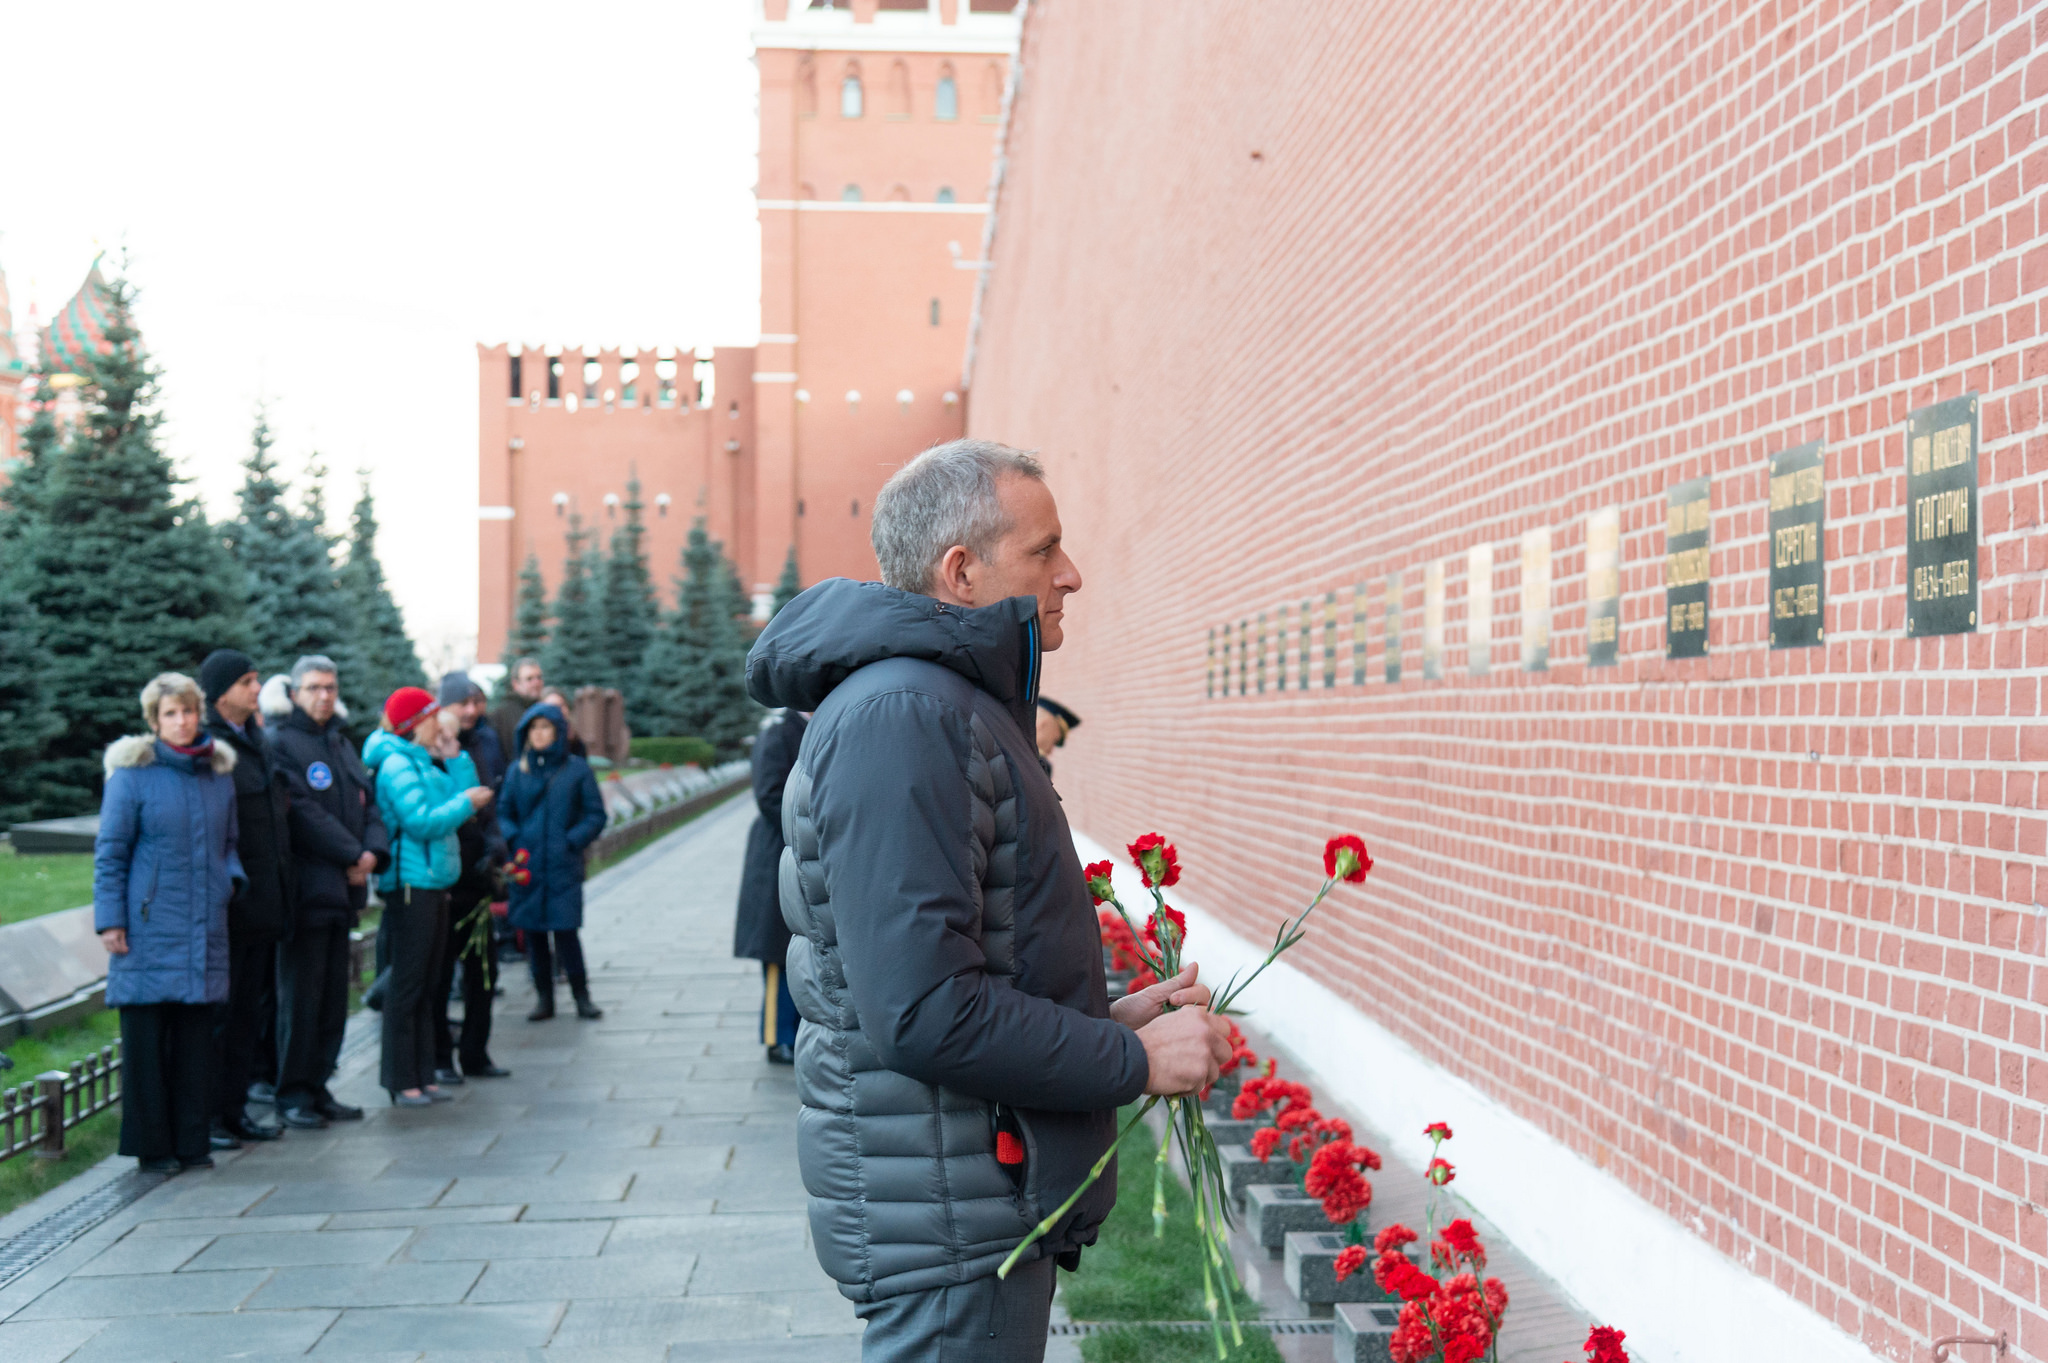 Expedition 58 crew member David Saint-Jacques of the Canadian Space Agency pays homage in traditional ceremonies Nov. 15 at the Kremlin Wall in Red Square in Moscow where Russian space icons are interred. Saint-Jacques, Anne McClain of NASA and Oleg Kononenko of Roscosmos will launch Dec. 3 on the Soyuz MS-11 spacecraft from the Baikonur Cosmodrome in Kazakhstan for a six-and-a-half month mission on the International Space Station